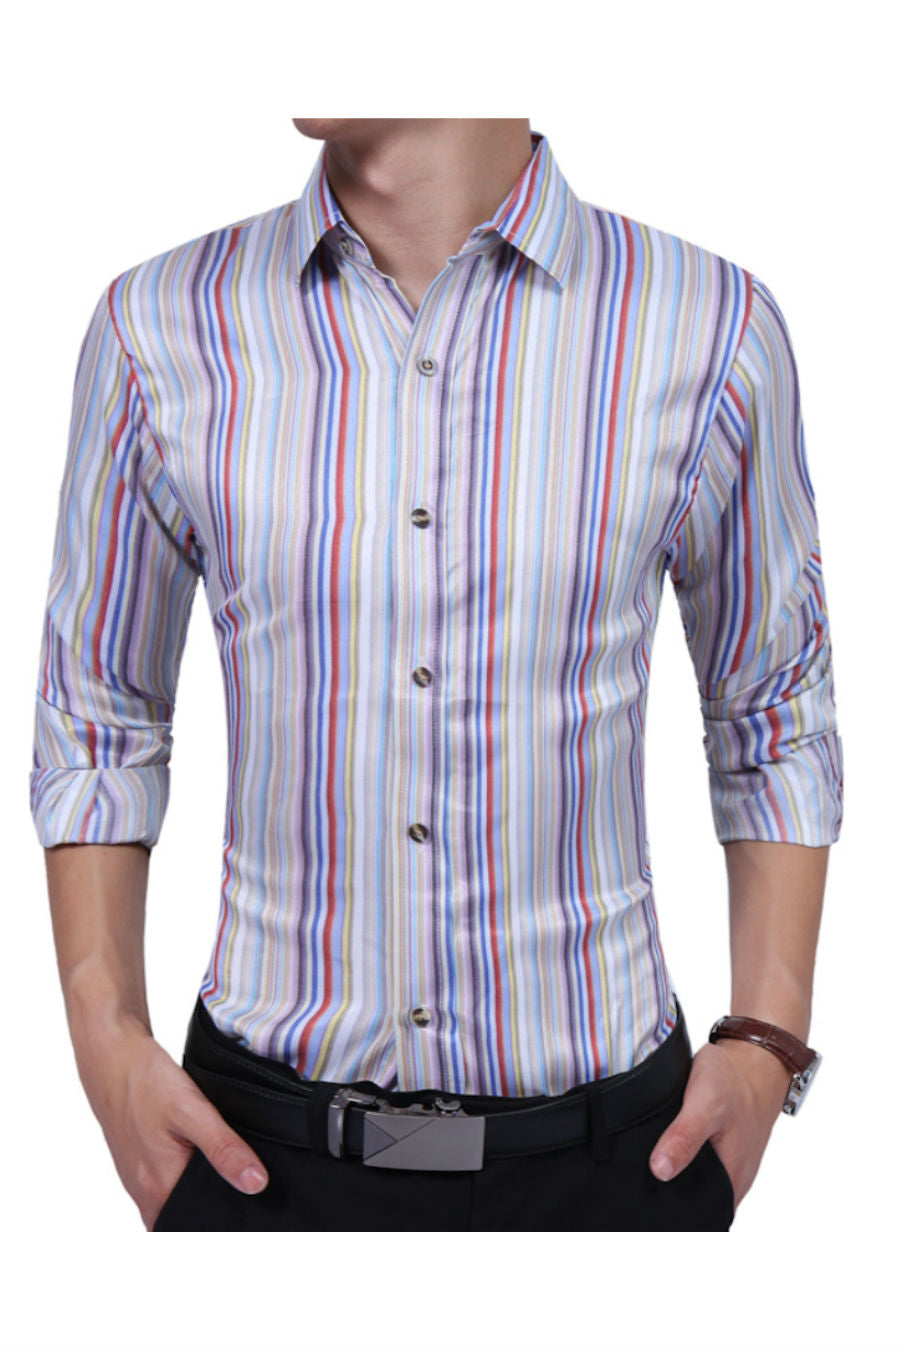 c3c8801ba Multicolor Striped Shirt. Tap to expand